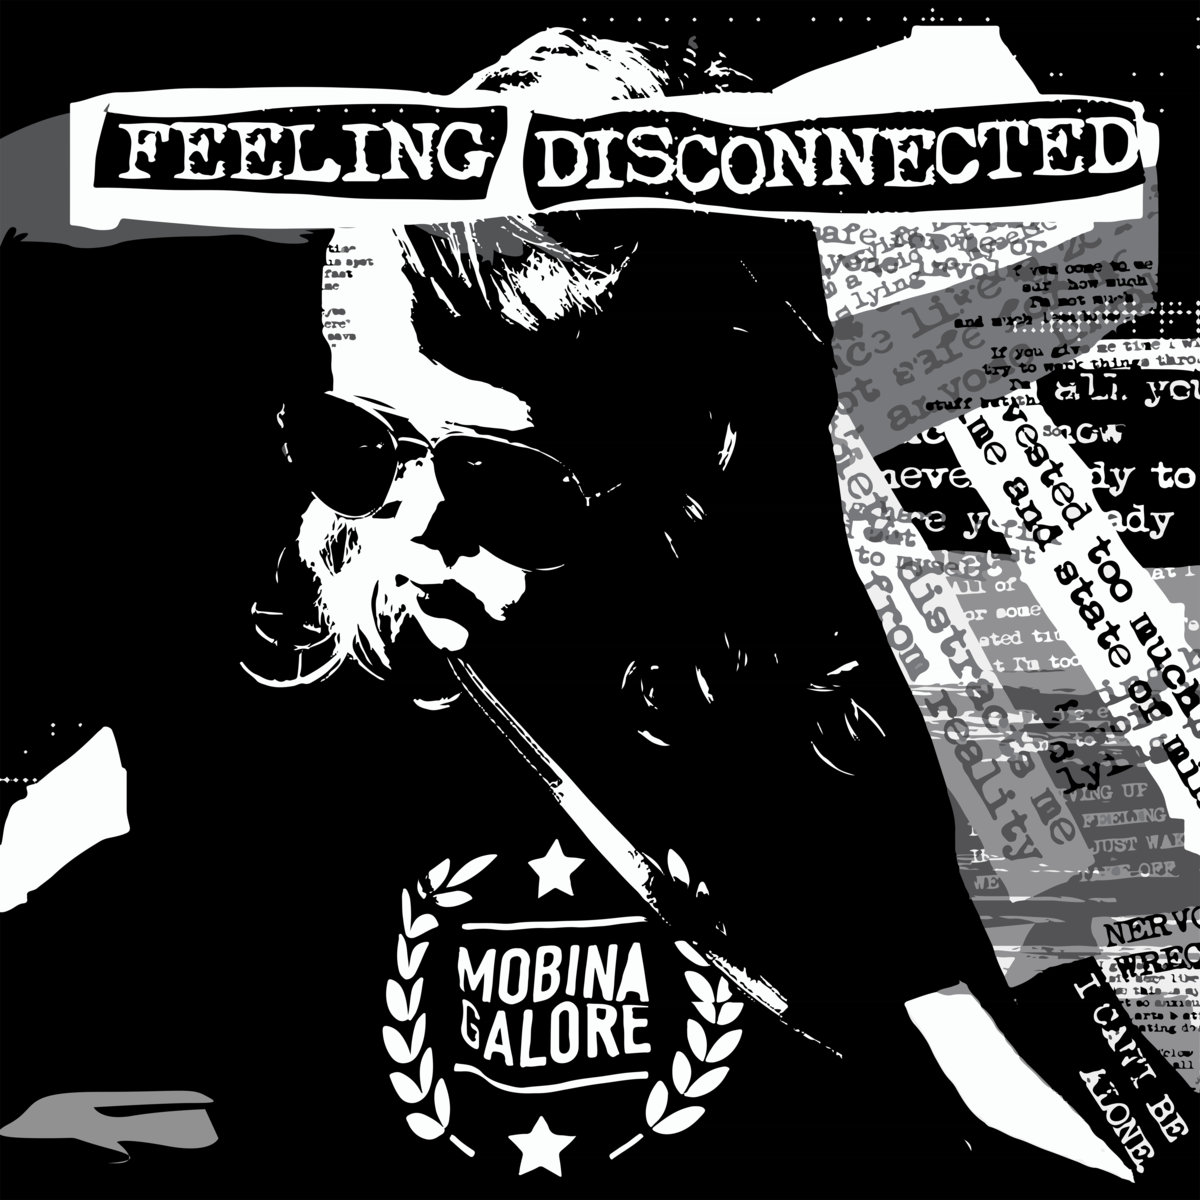 Mobina Galore - Feeling Disconnected  Produced, Engineered, Mixed